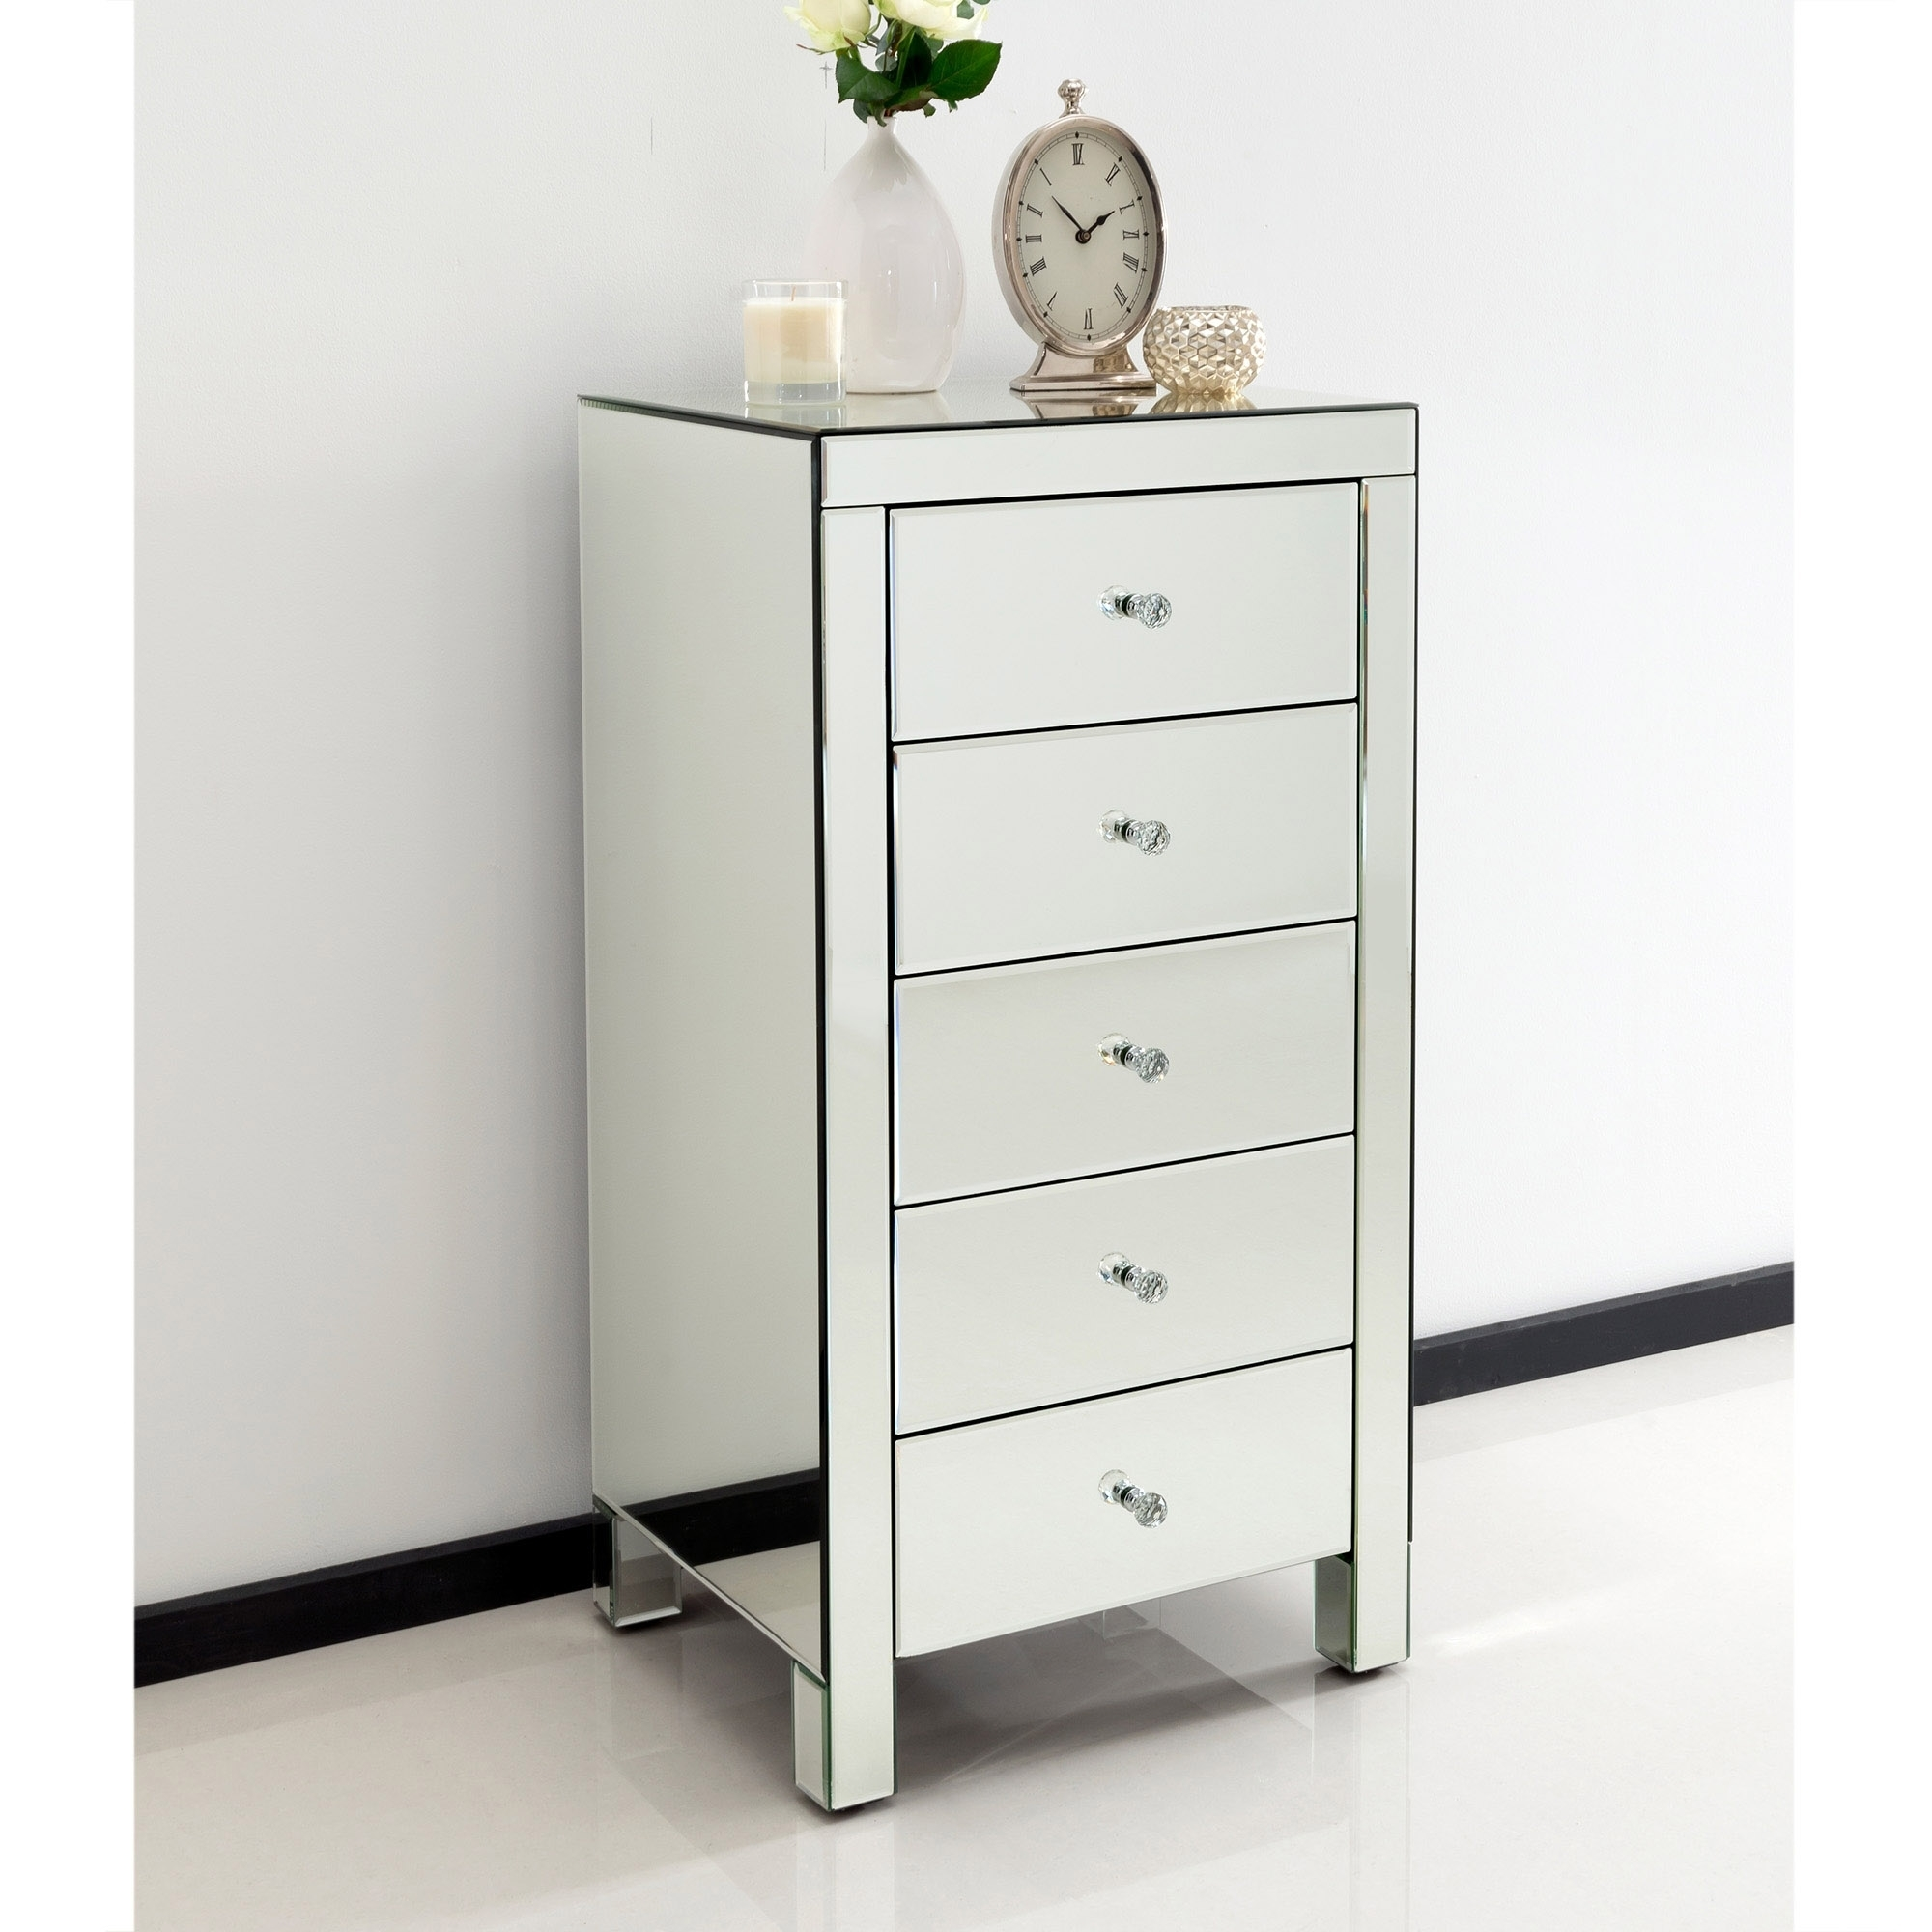 Mirrored Bedroom Furniture Uk Romano Crystal Mirrored Bedroom Furniture Homesdirect